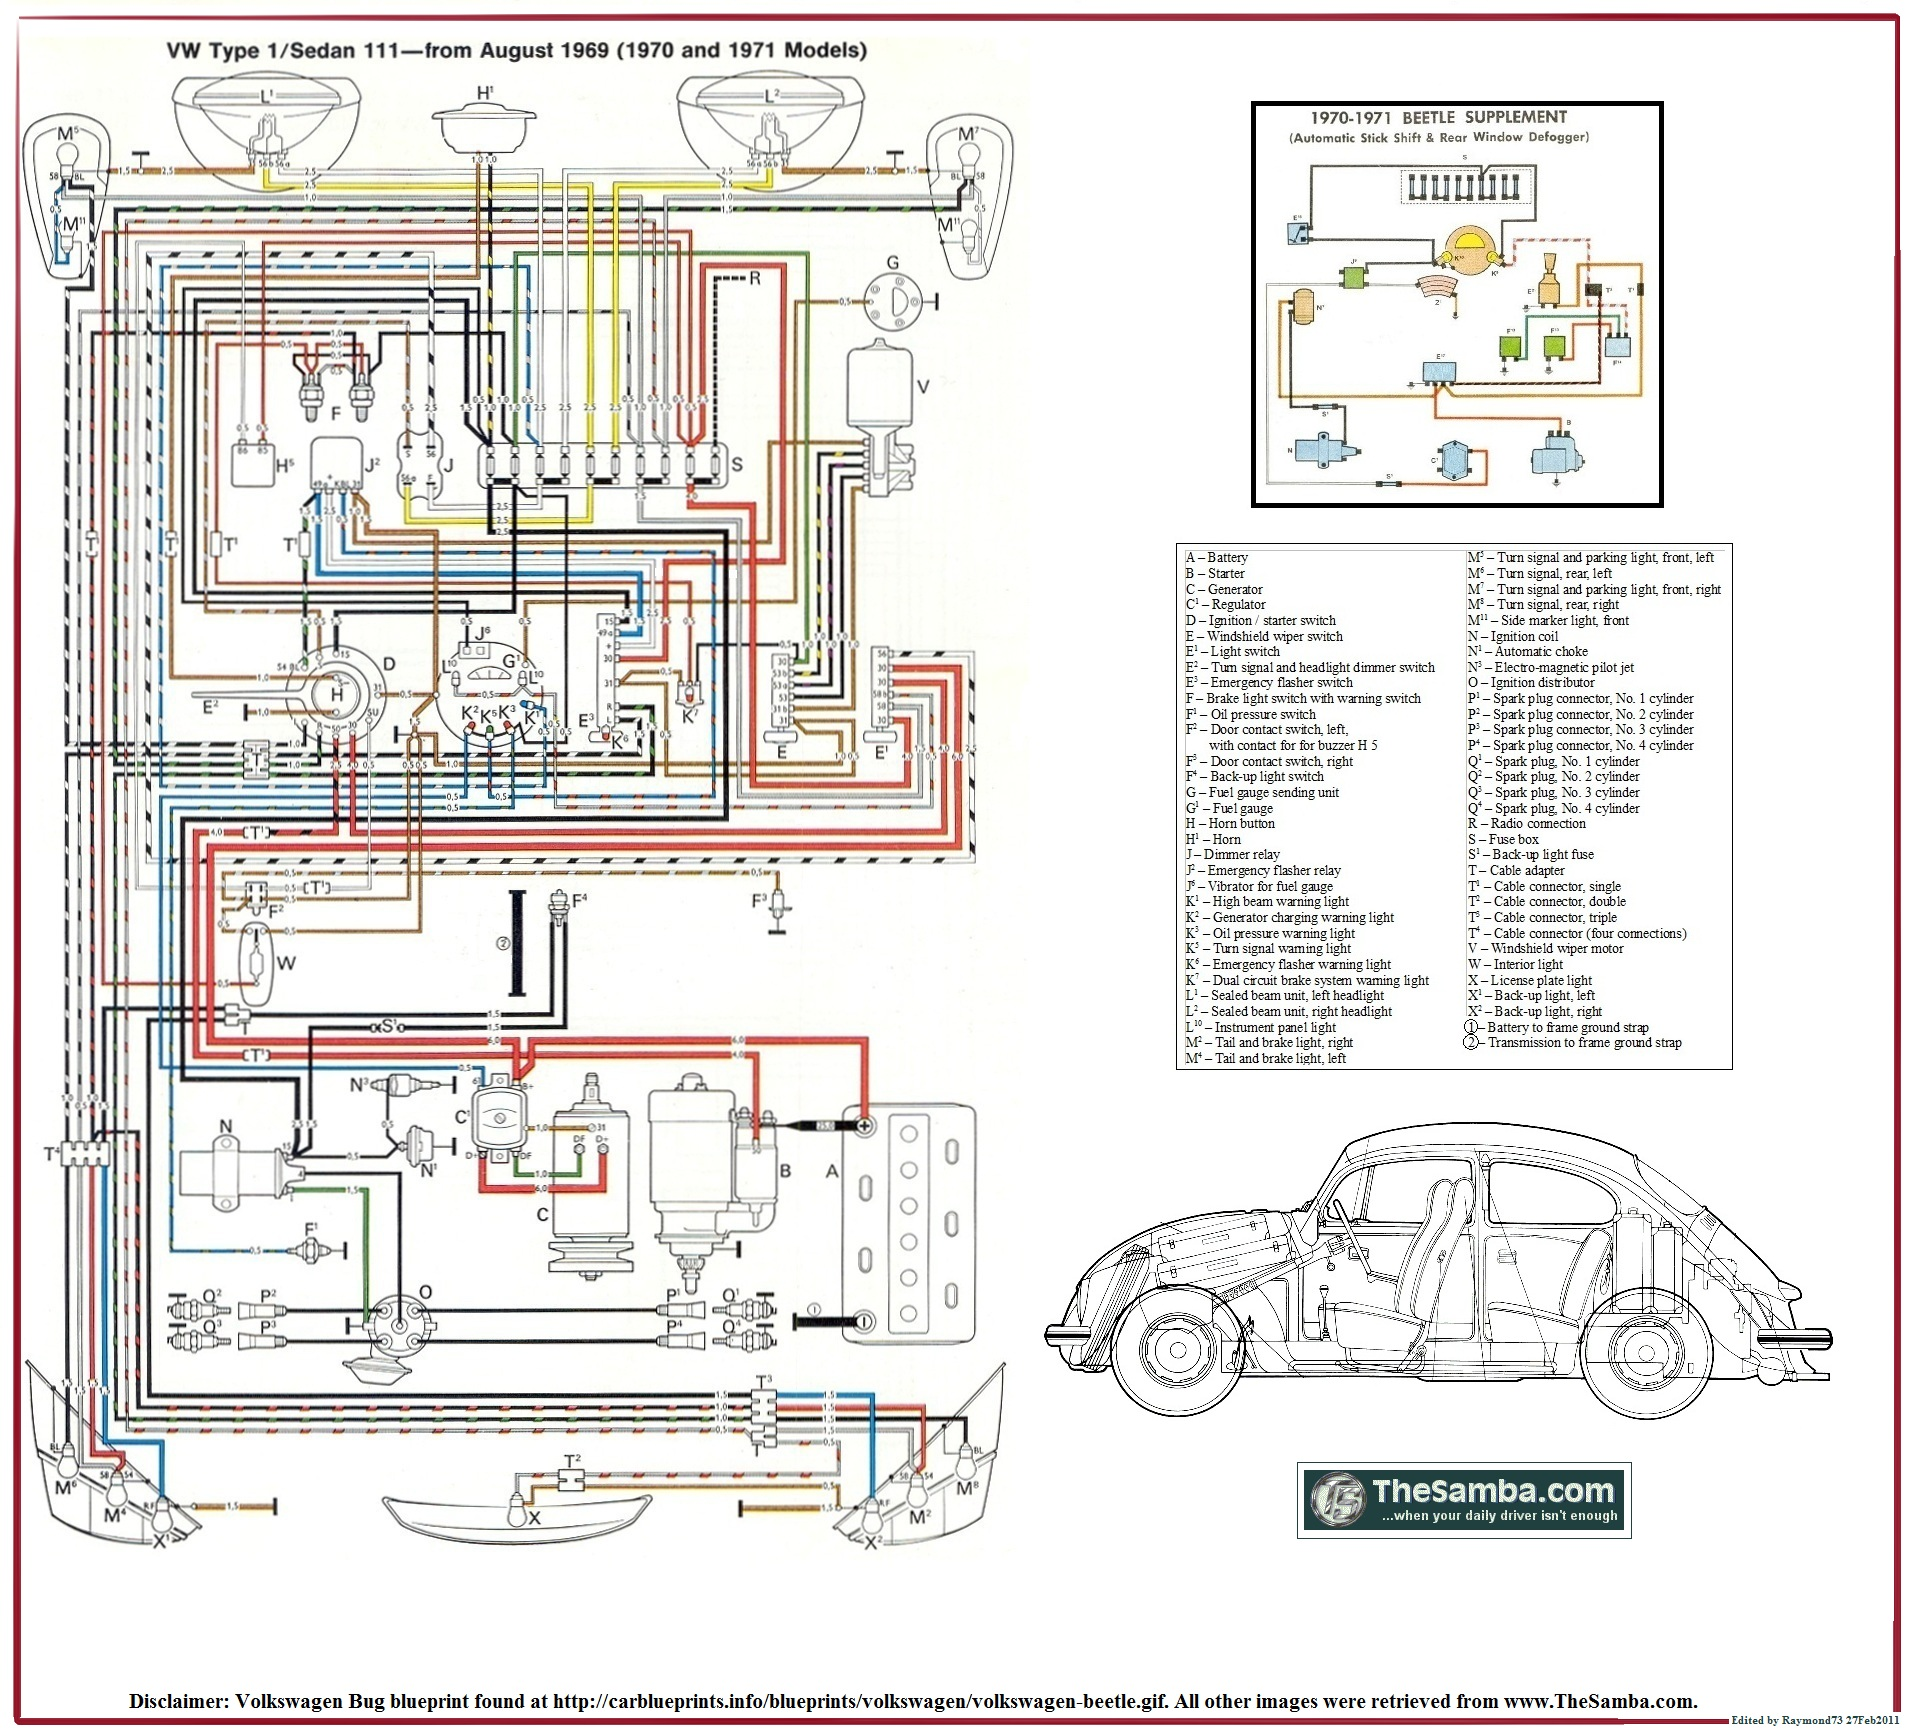 72 vw wiring diagram vw beetle wiring diagram uk vw wiring diagrams online beetle wiring diagram uk 1970 wiring diagrams